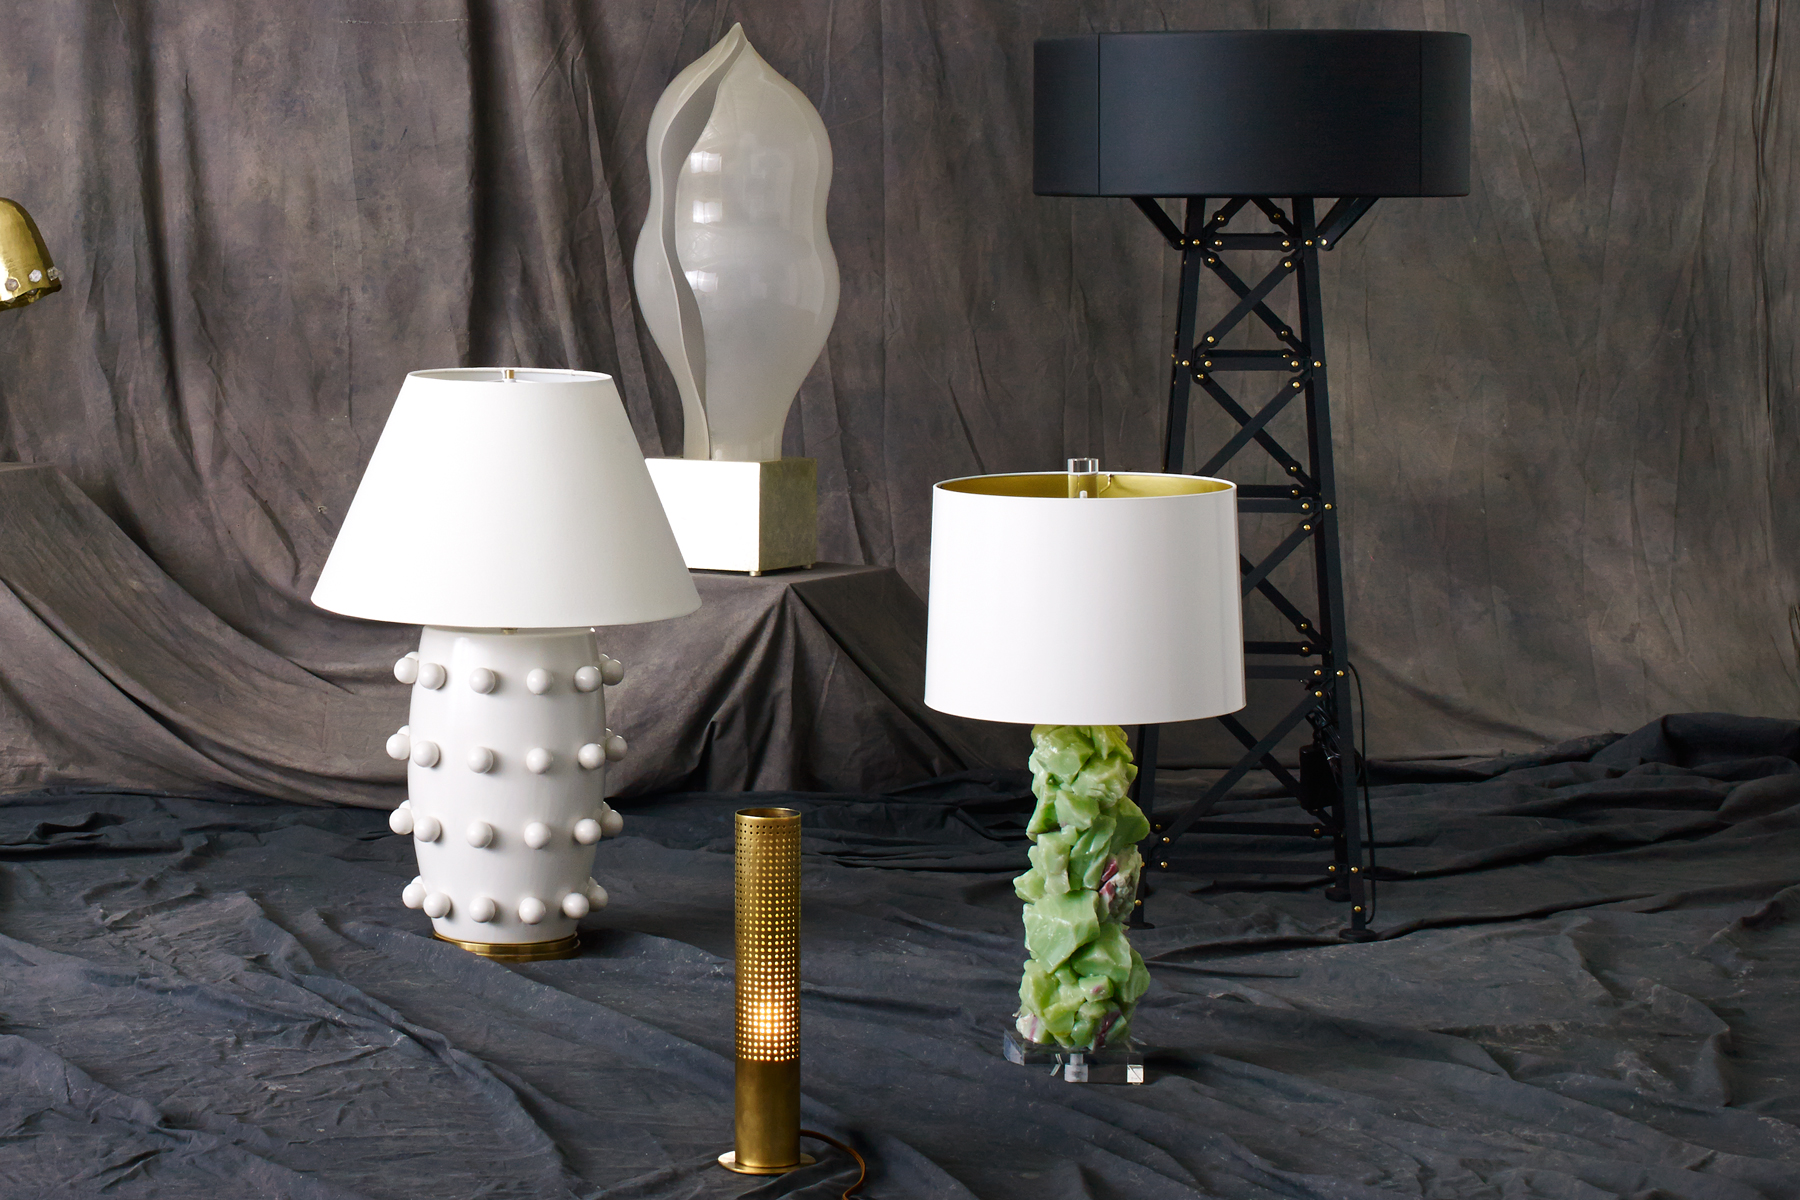 advice from dallas best interior designers magazine lamps accent table lighting redmond left right circa linden lamp visual comfort magnolia jacques garcia baker precision square